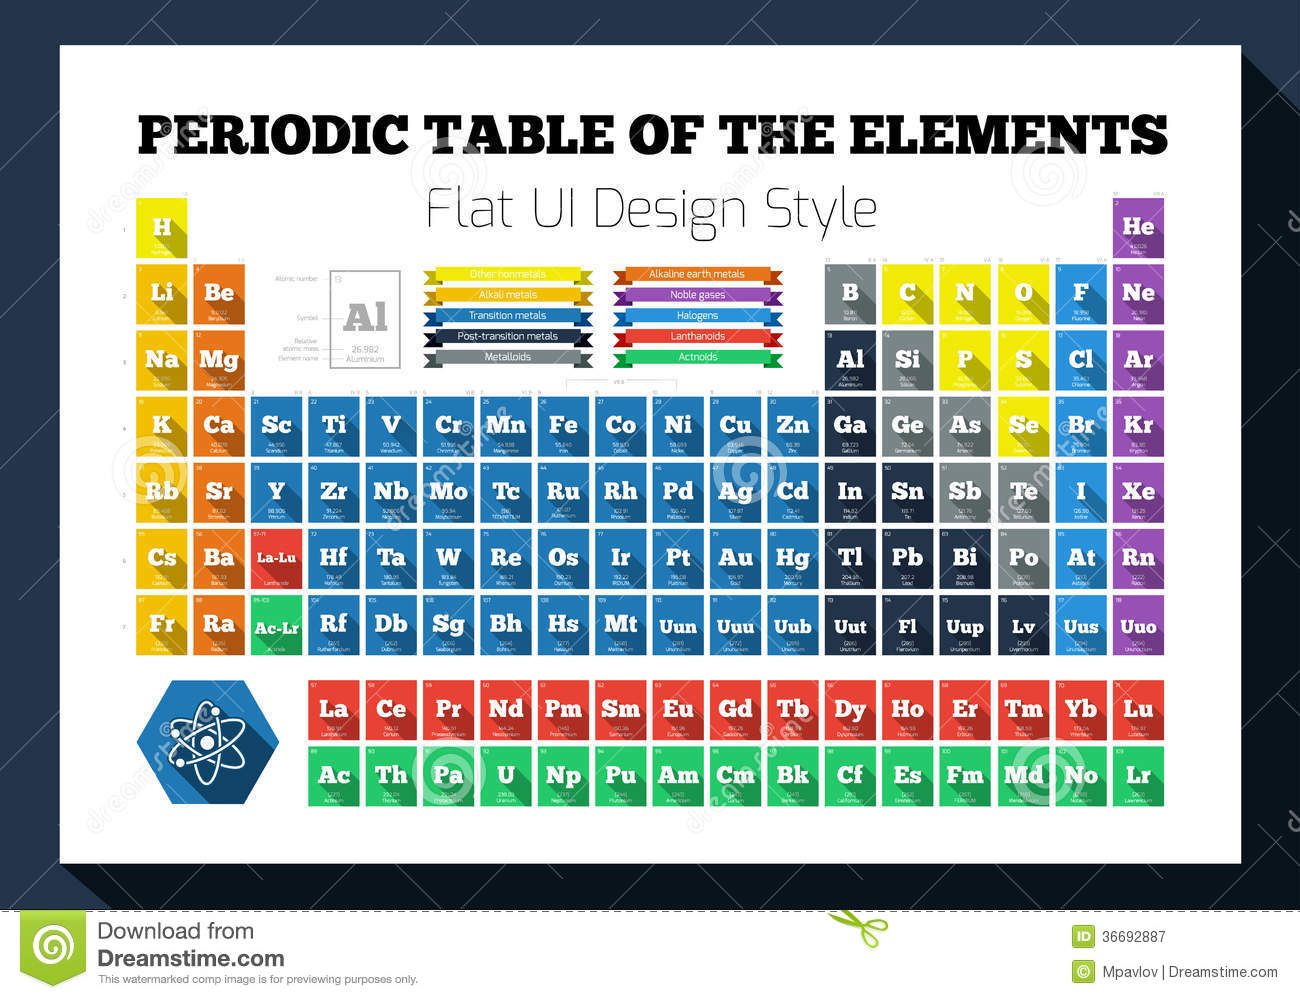 Periodic table coloring book student success action plan projects urtaz Images